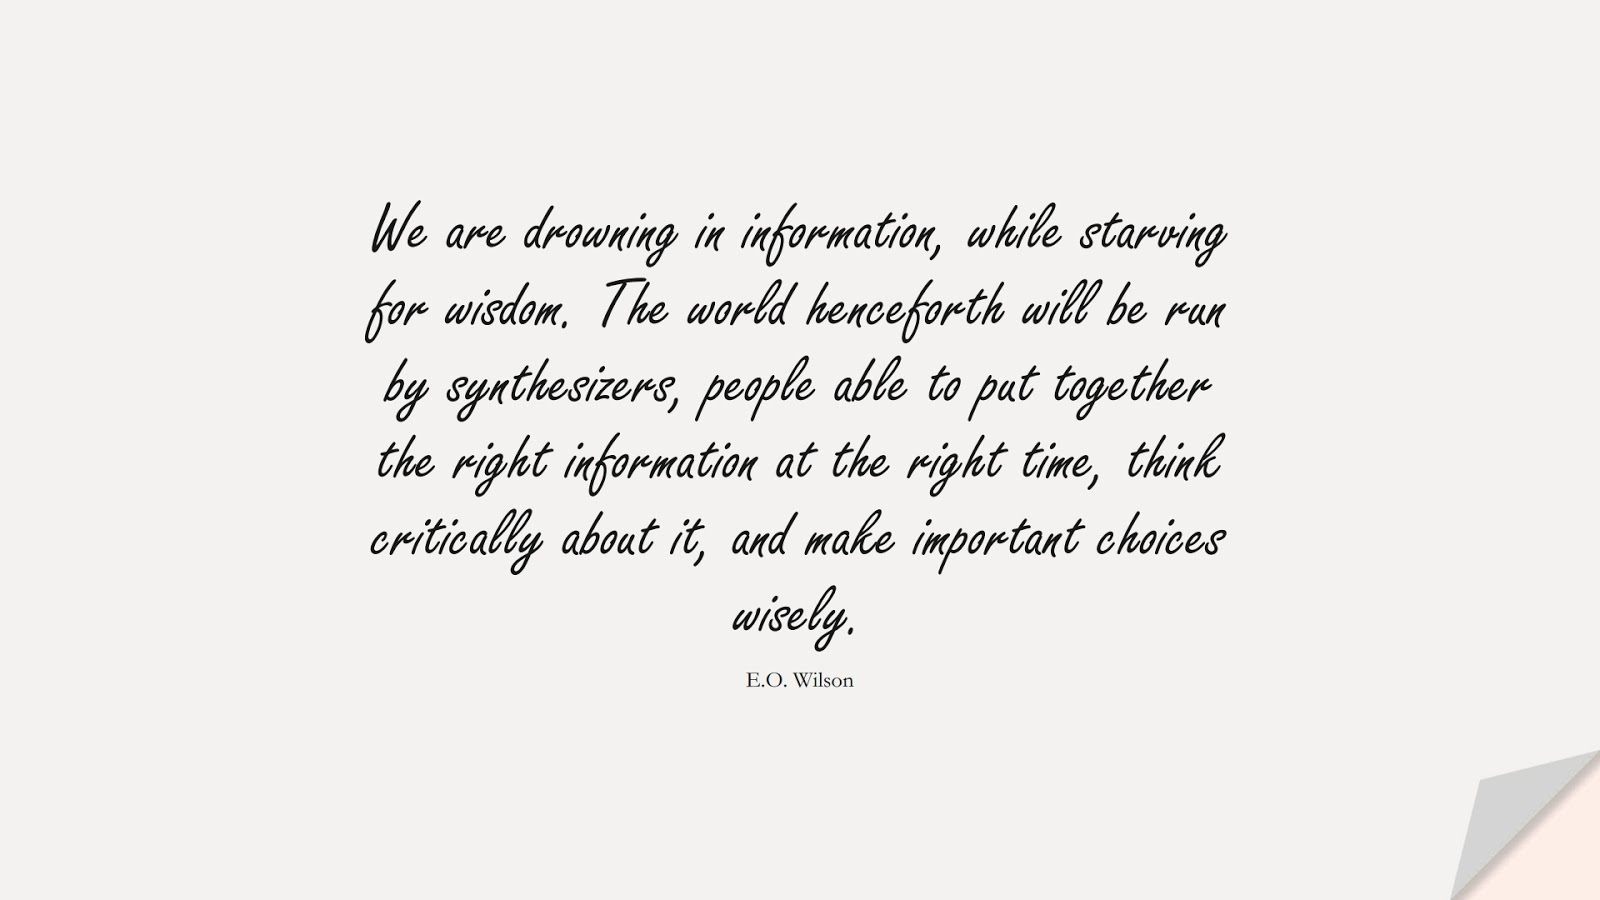 We are drowning in information, while starving for wisdom. The world henceforth will be run by synthesizers, people able to put together the right information at the right time, think critically about it, and make important choices wisely. (E.O. Wilson);  #WordsofWisdom